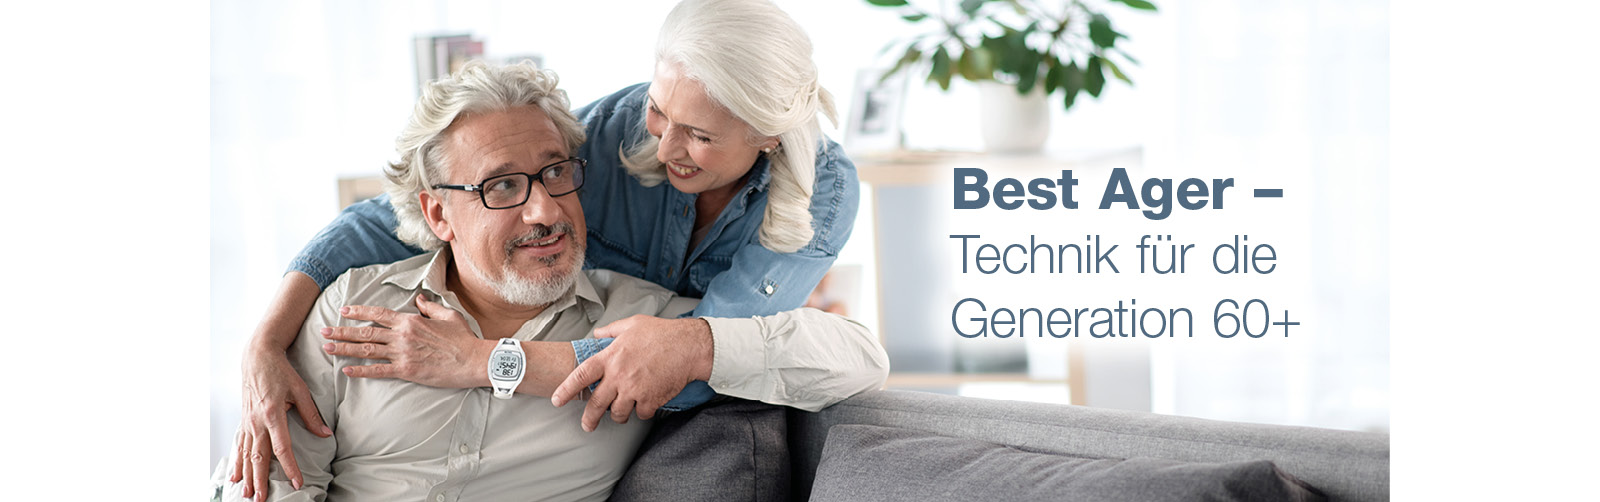 Technik für die Generation 60plus